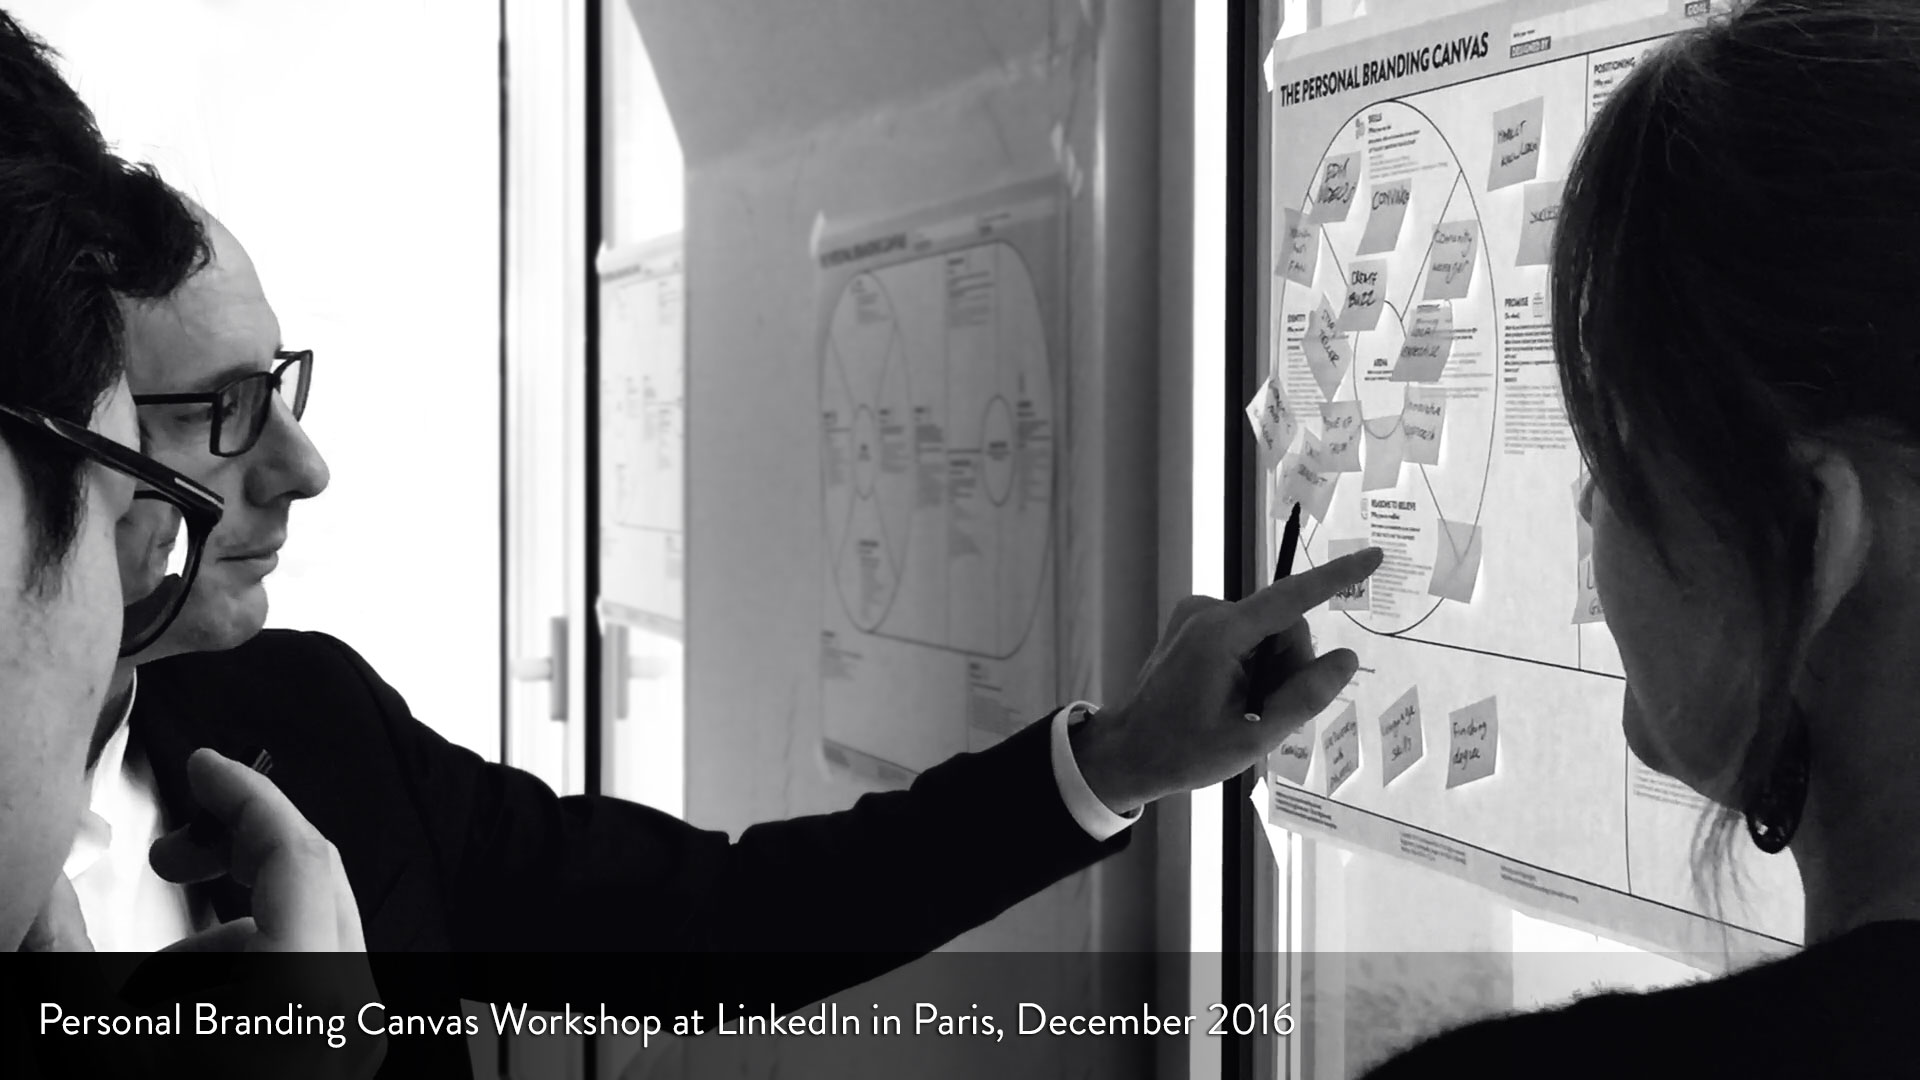 luigi centenaro at linkedin paris